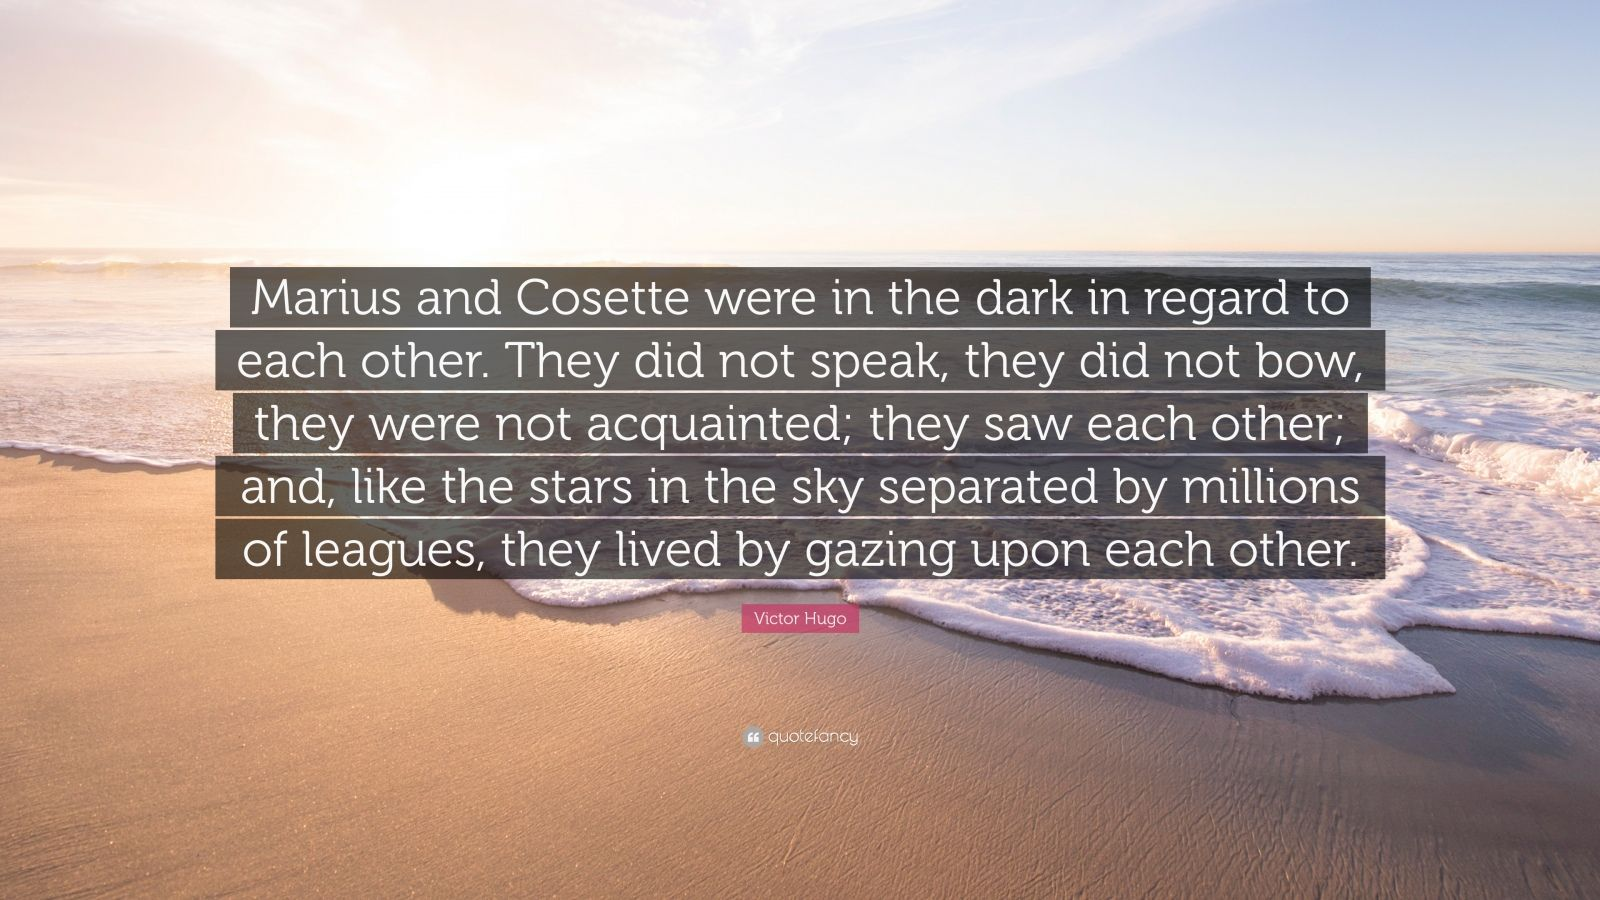 "Victor Hugo Quote: ""Marius and Cosette were in the dark in regard to each other. They did not speak, they did not bow, they were not acquainted; they saw each other; and, like the stars in the sky separated by millions of leagues, they lived by gazing upon each other."""